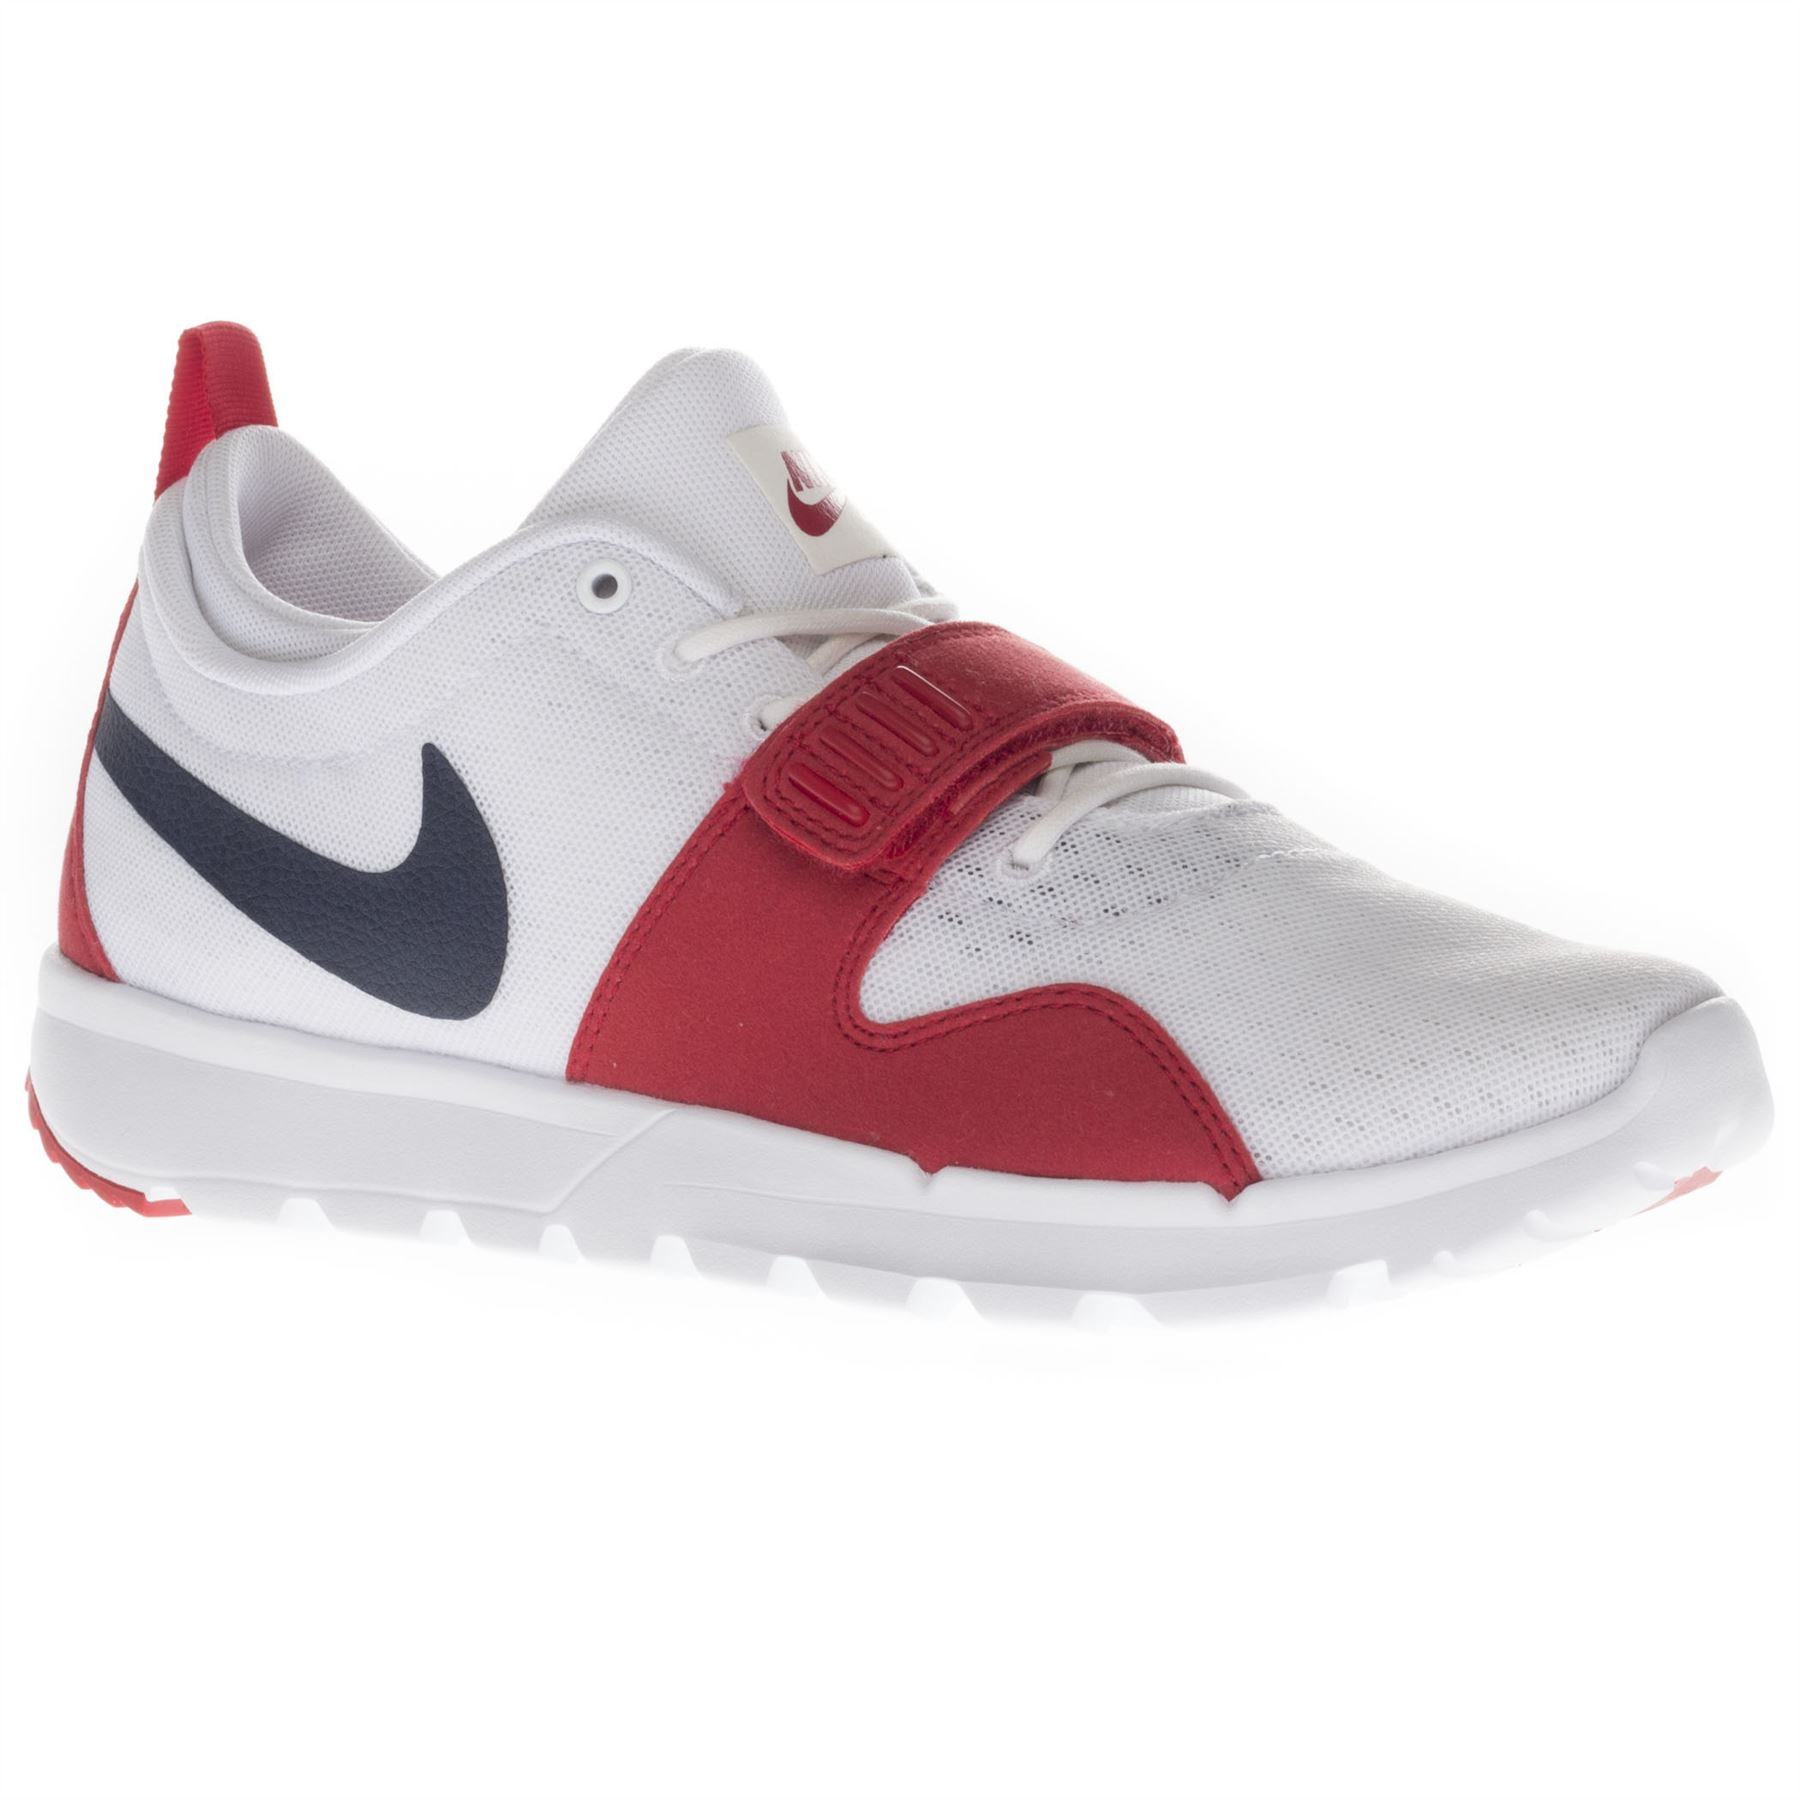 Nike-Men-039-s-Trainerendor-Low-Top-Running-